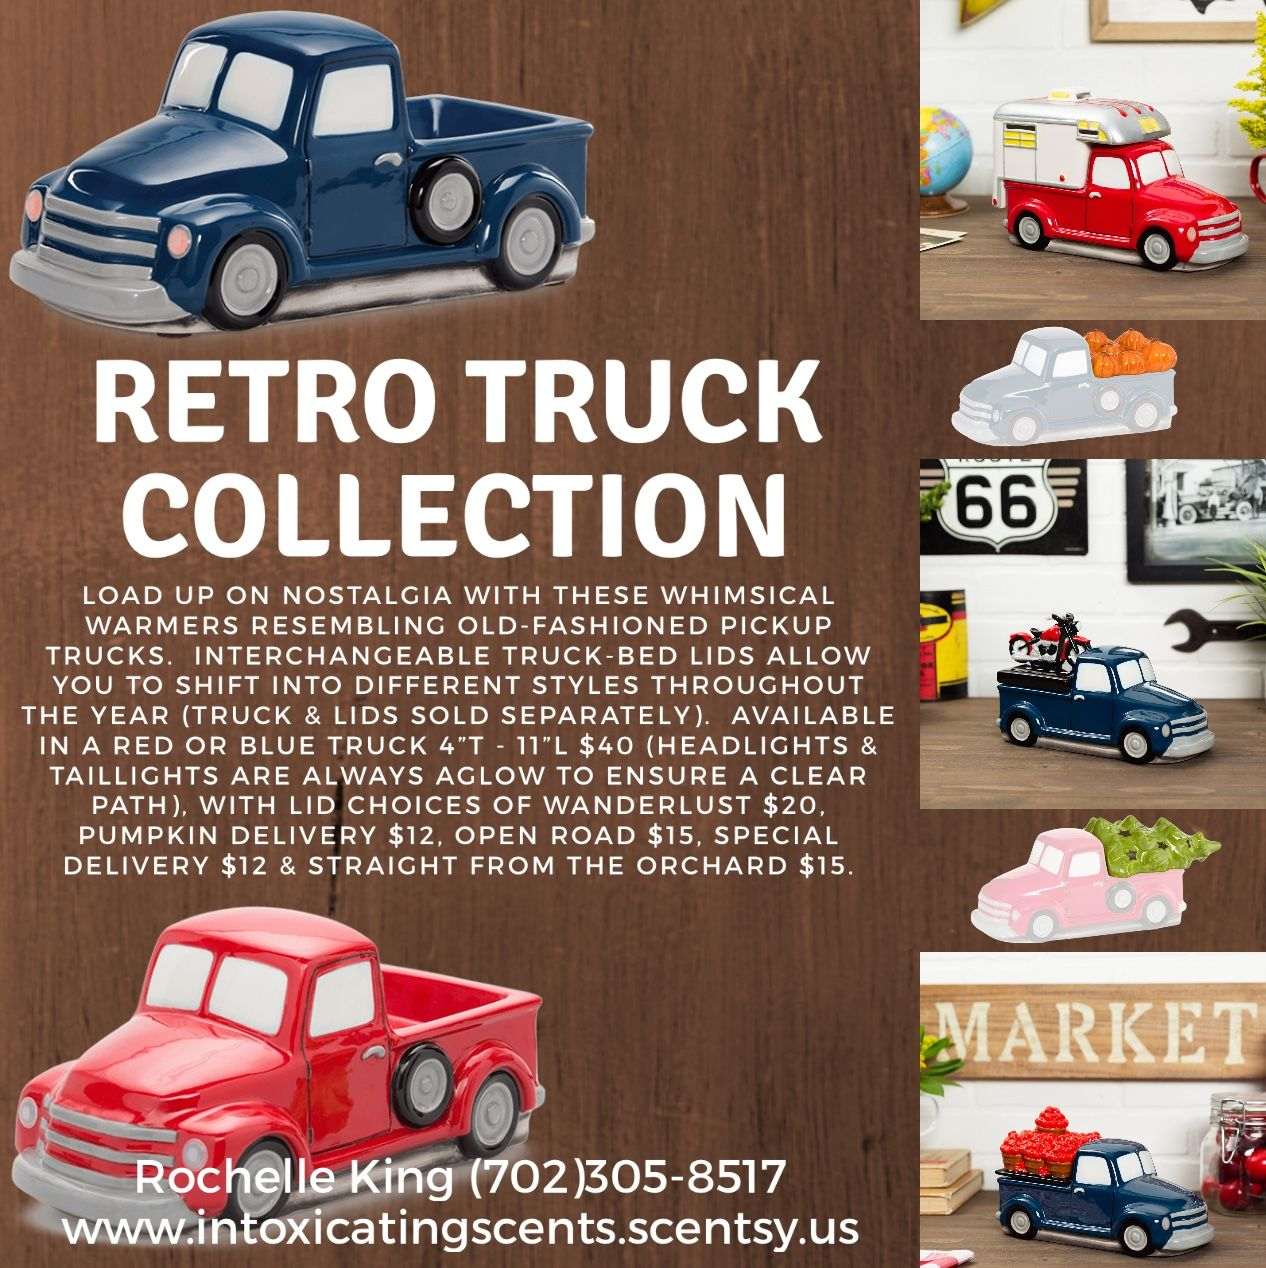 Introducing Our New Retro Truck Collection This Truck Warms Our